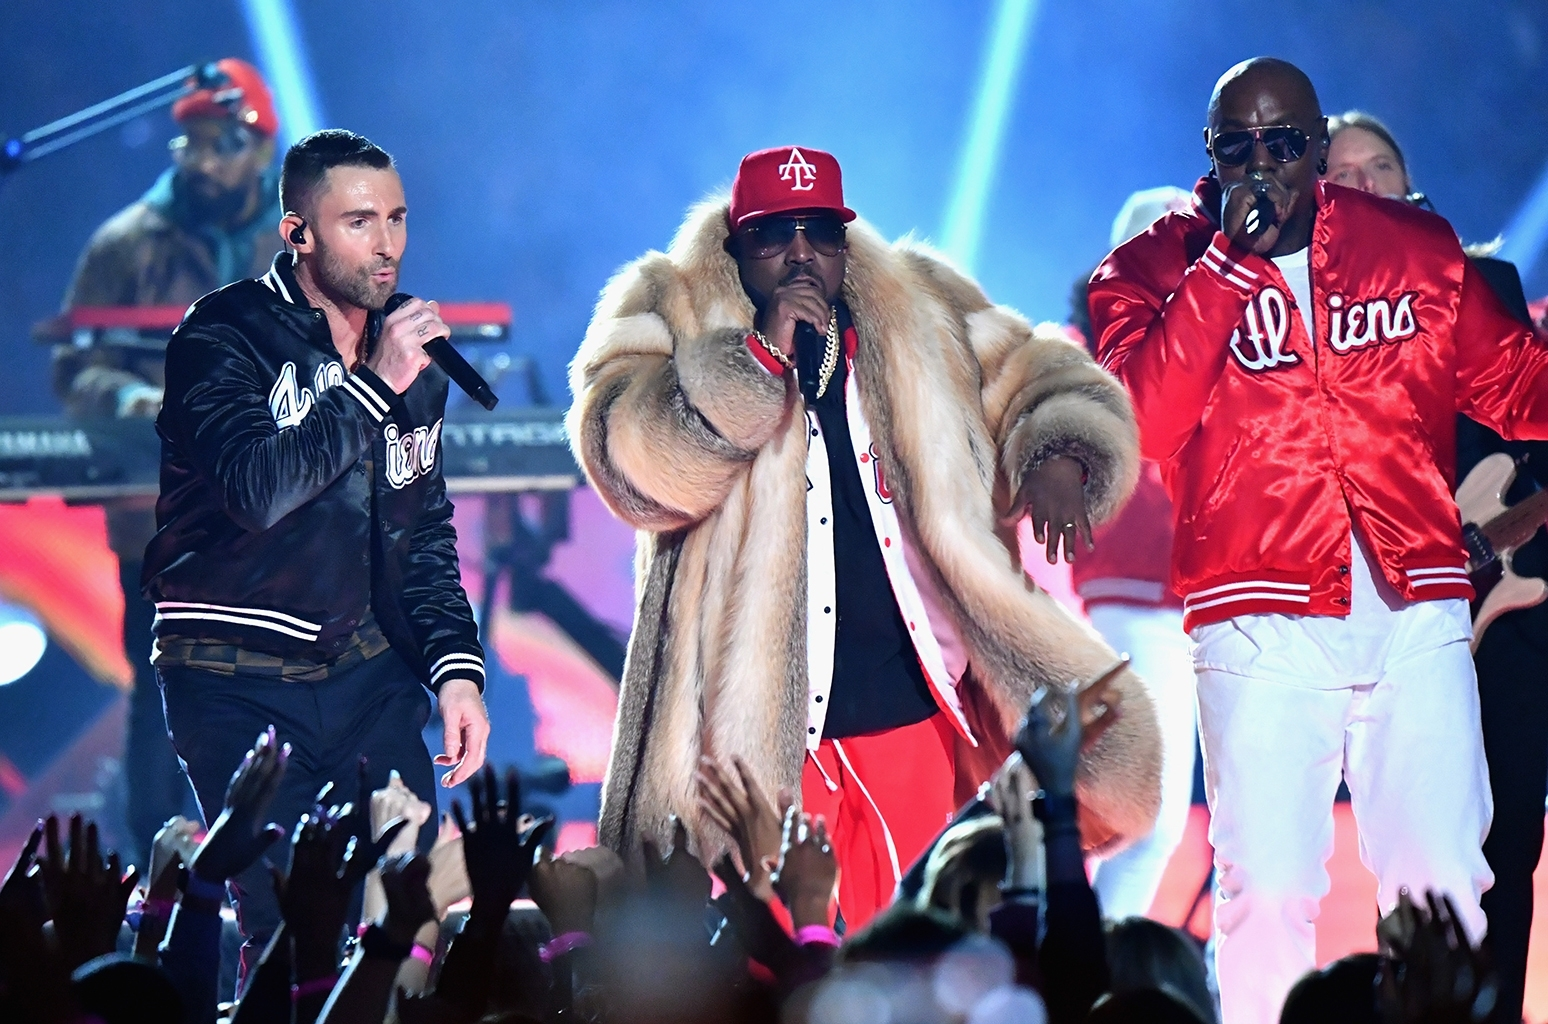 Super Bowl Liii Halftime Show: Why The Atlanta Lite within Super Bowl Halftime Show 2019